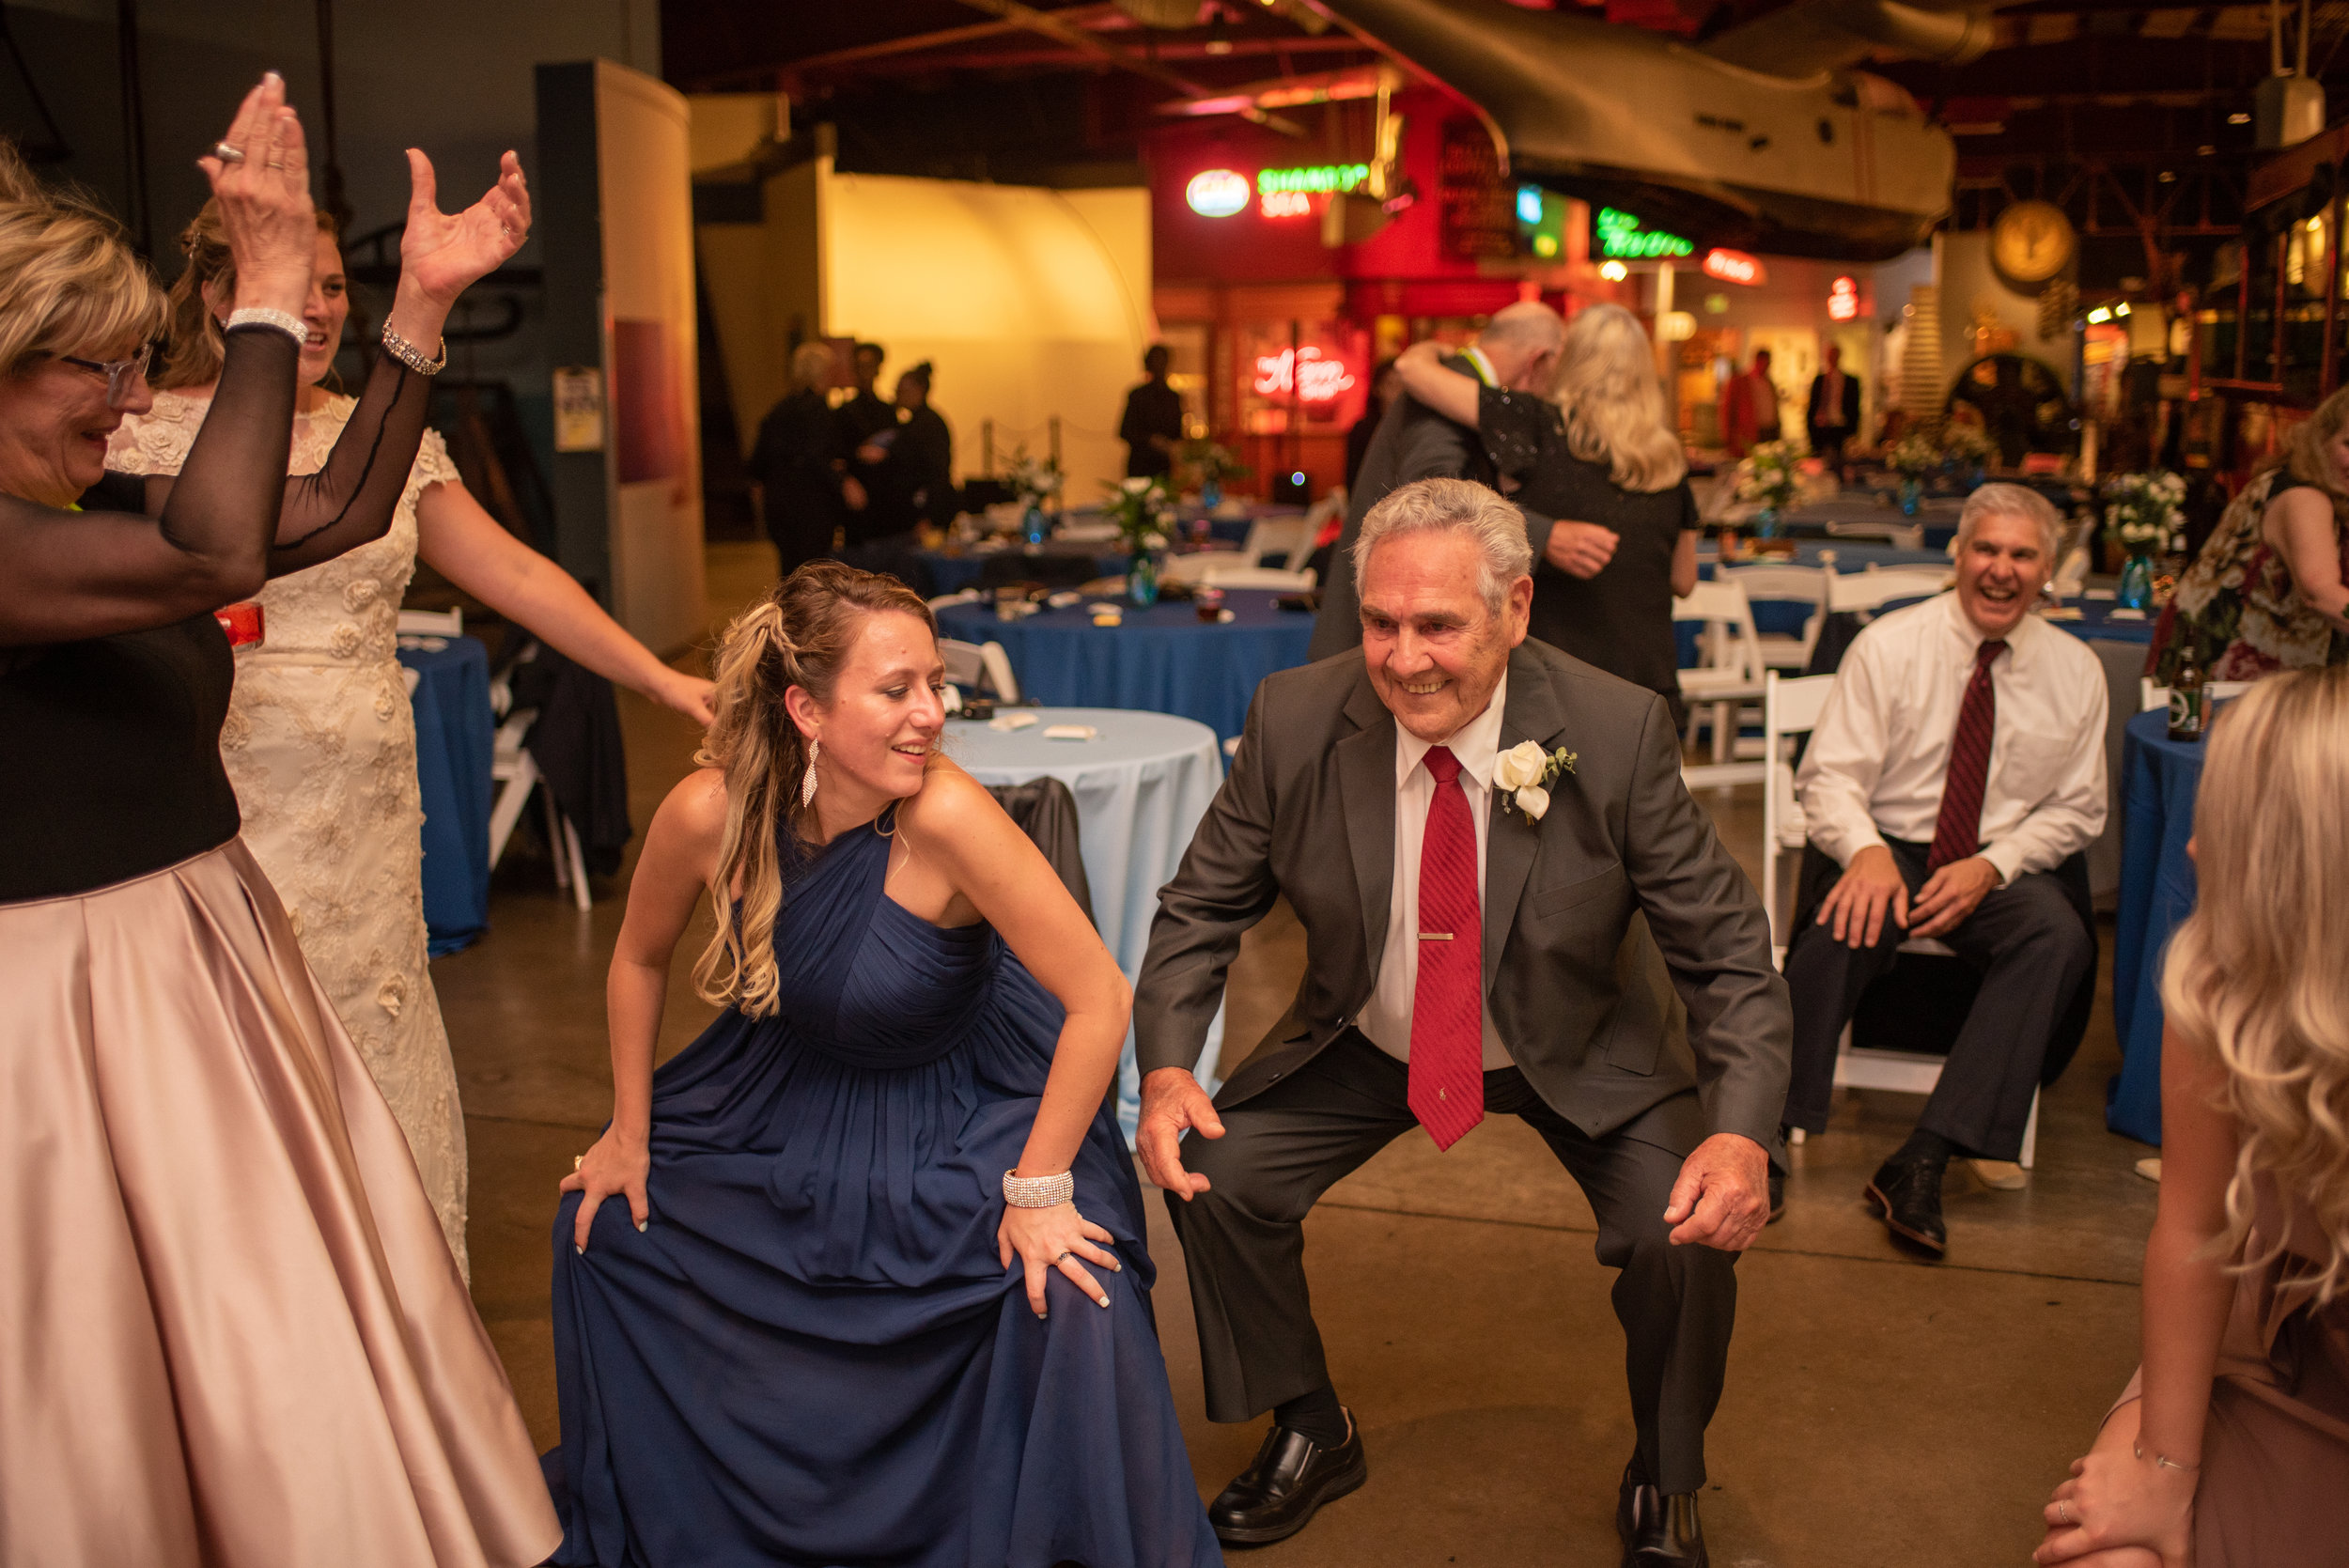 Grandpa was killing it on the dance floor!